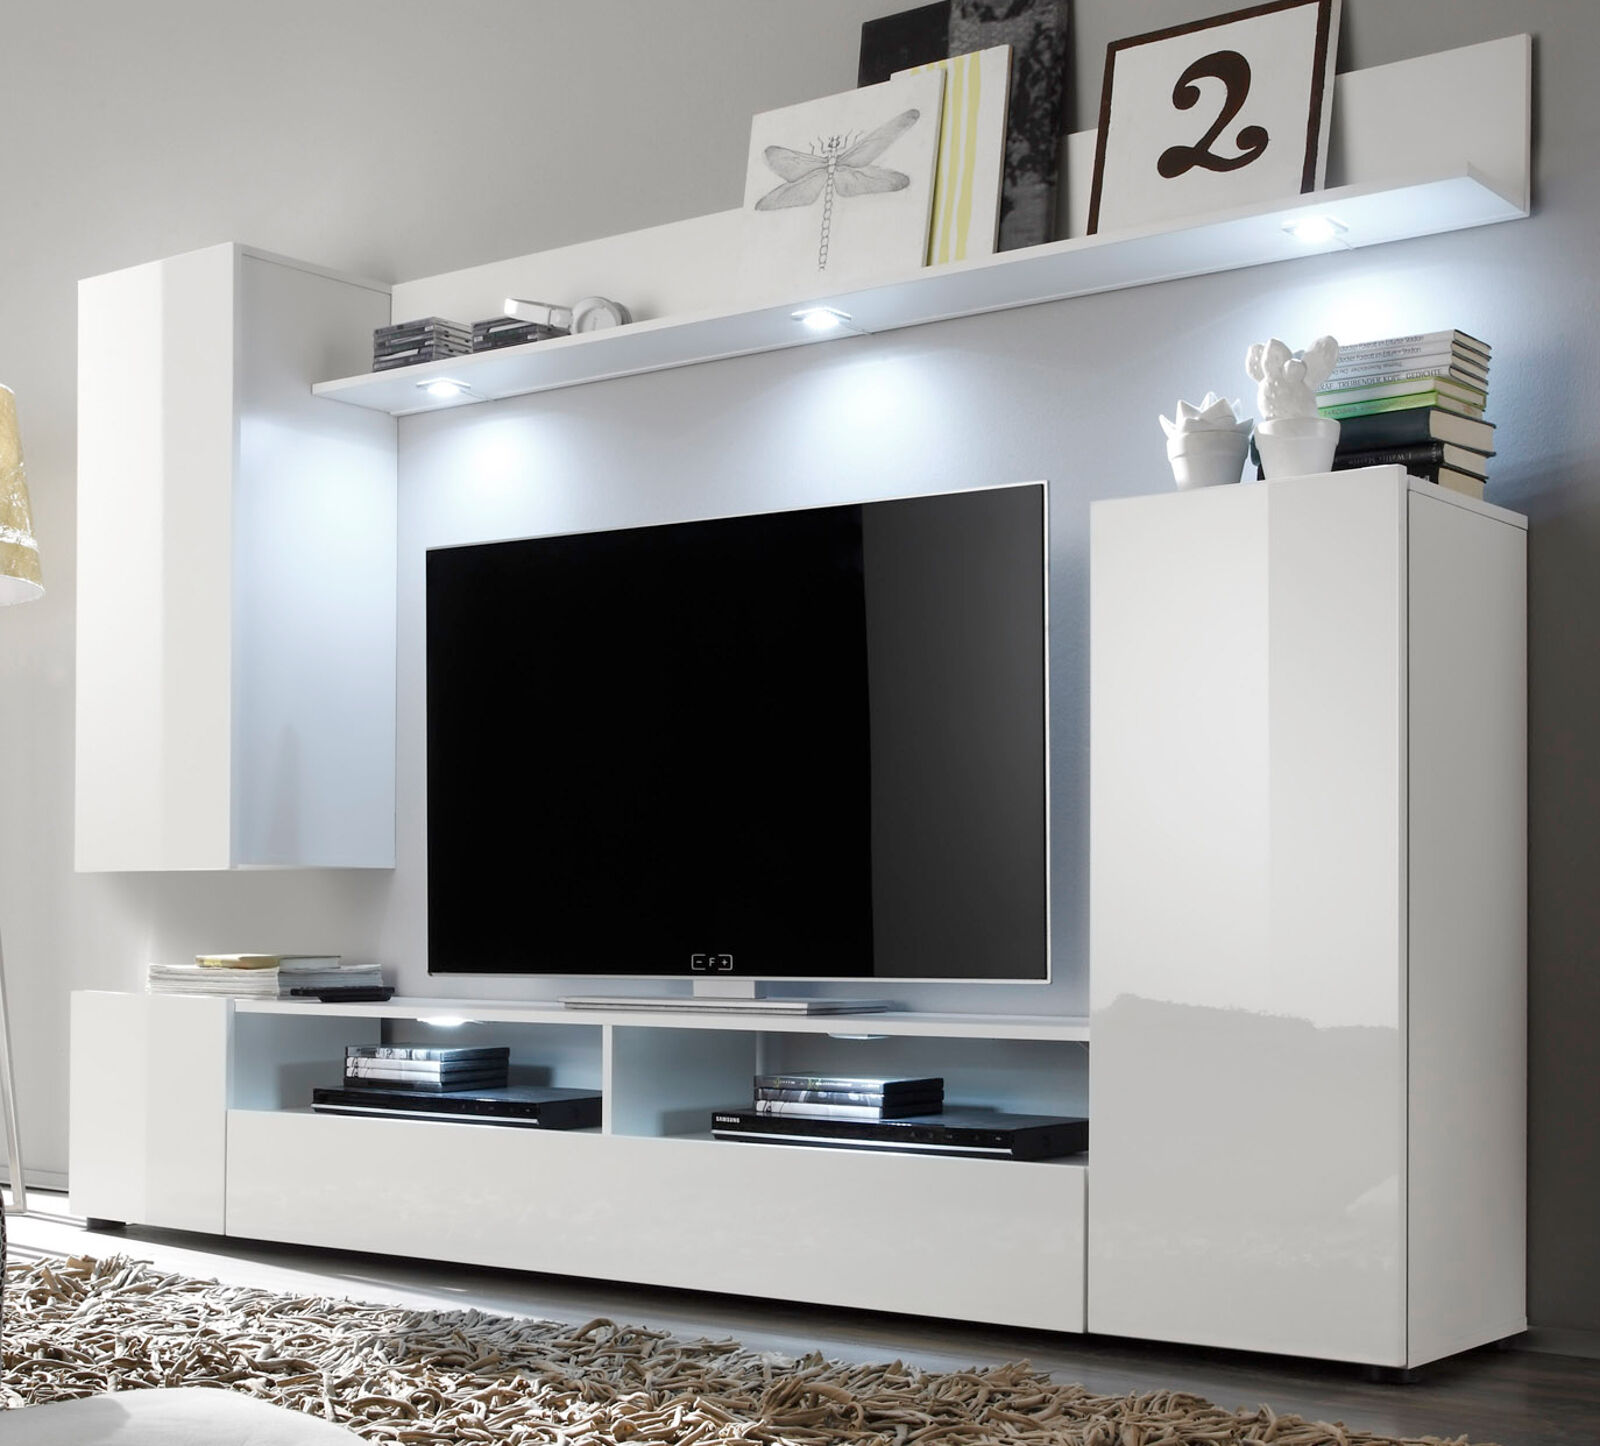 wohnwand wei hochglanz fernsehschrank wohnzimmer tv hifi m bel medienwand dos eur 267 99. Black Bedroom Furniture Sets. Home Design Ideas